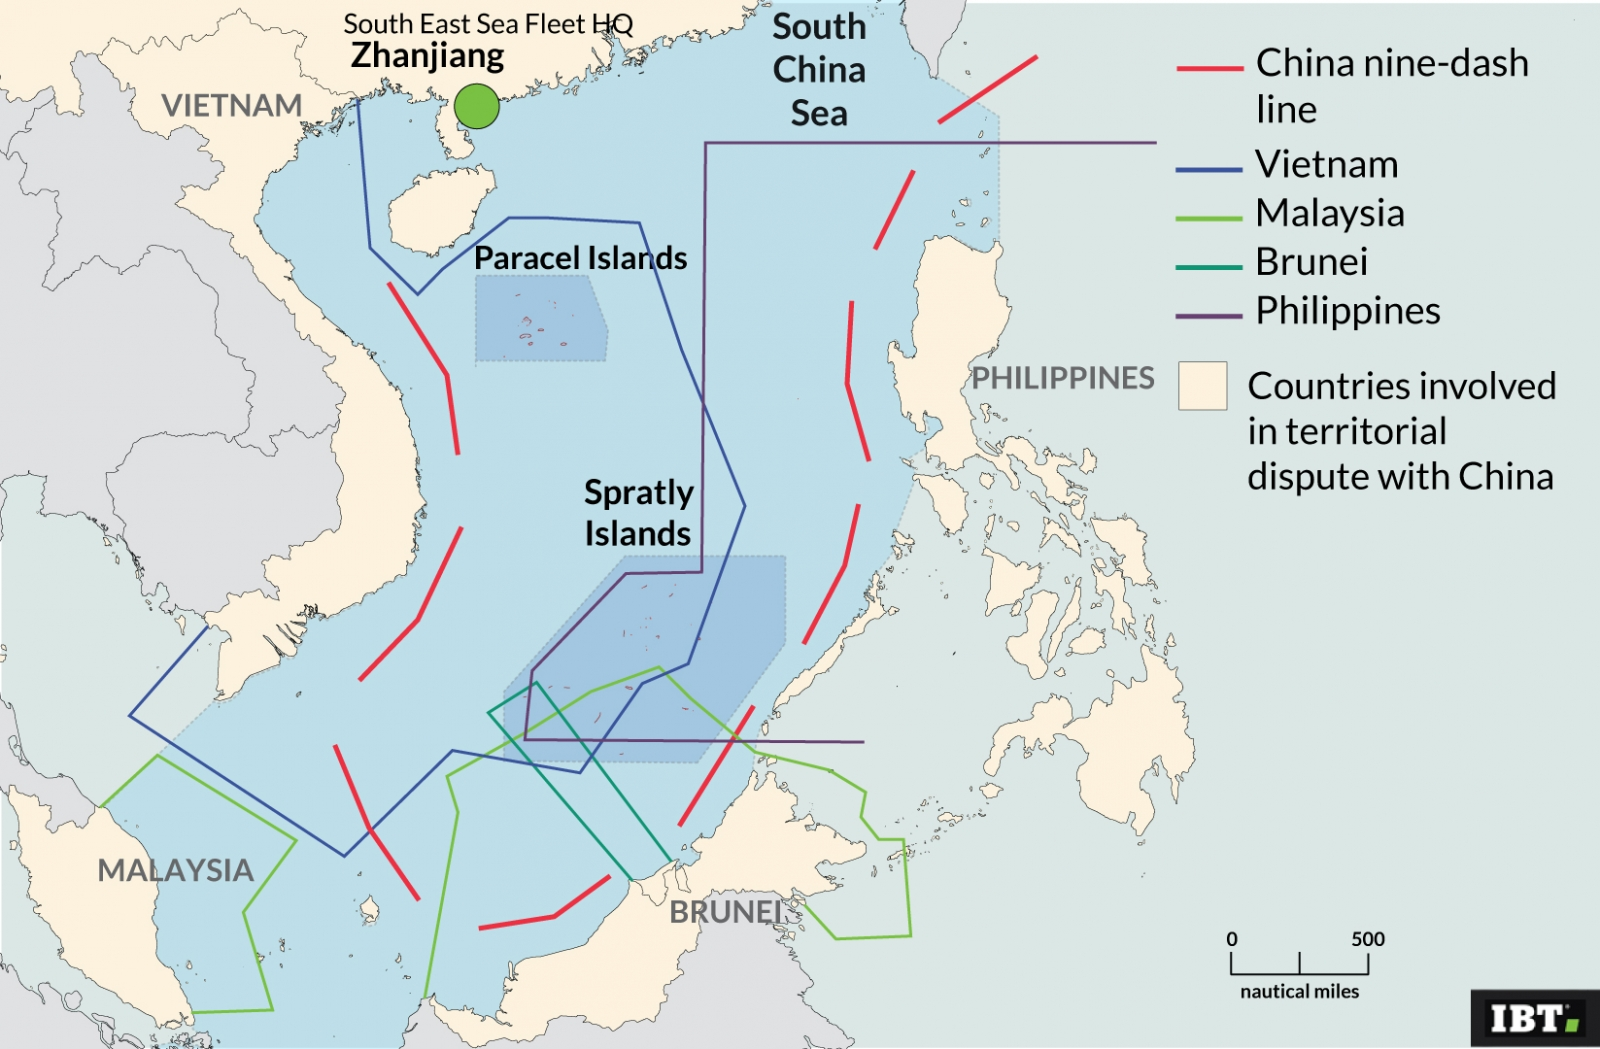 constitution south china sea and territorial Tensions over competing territorial claims in the resource-rich south china sea have spiked in recent months as claimant countries, including china and the philippines, await an upcoming decision by an international tribunal that body, located at the permanent court of arbitration in the hague, is.